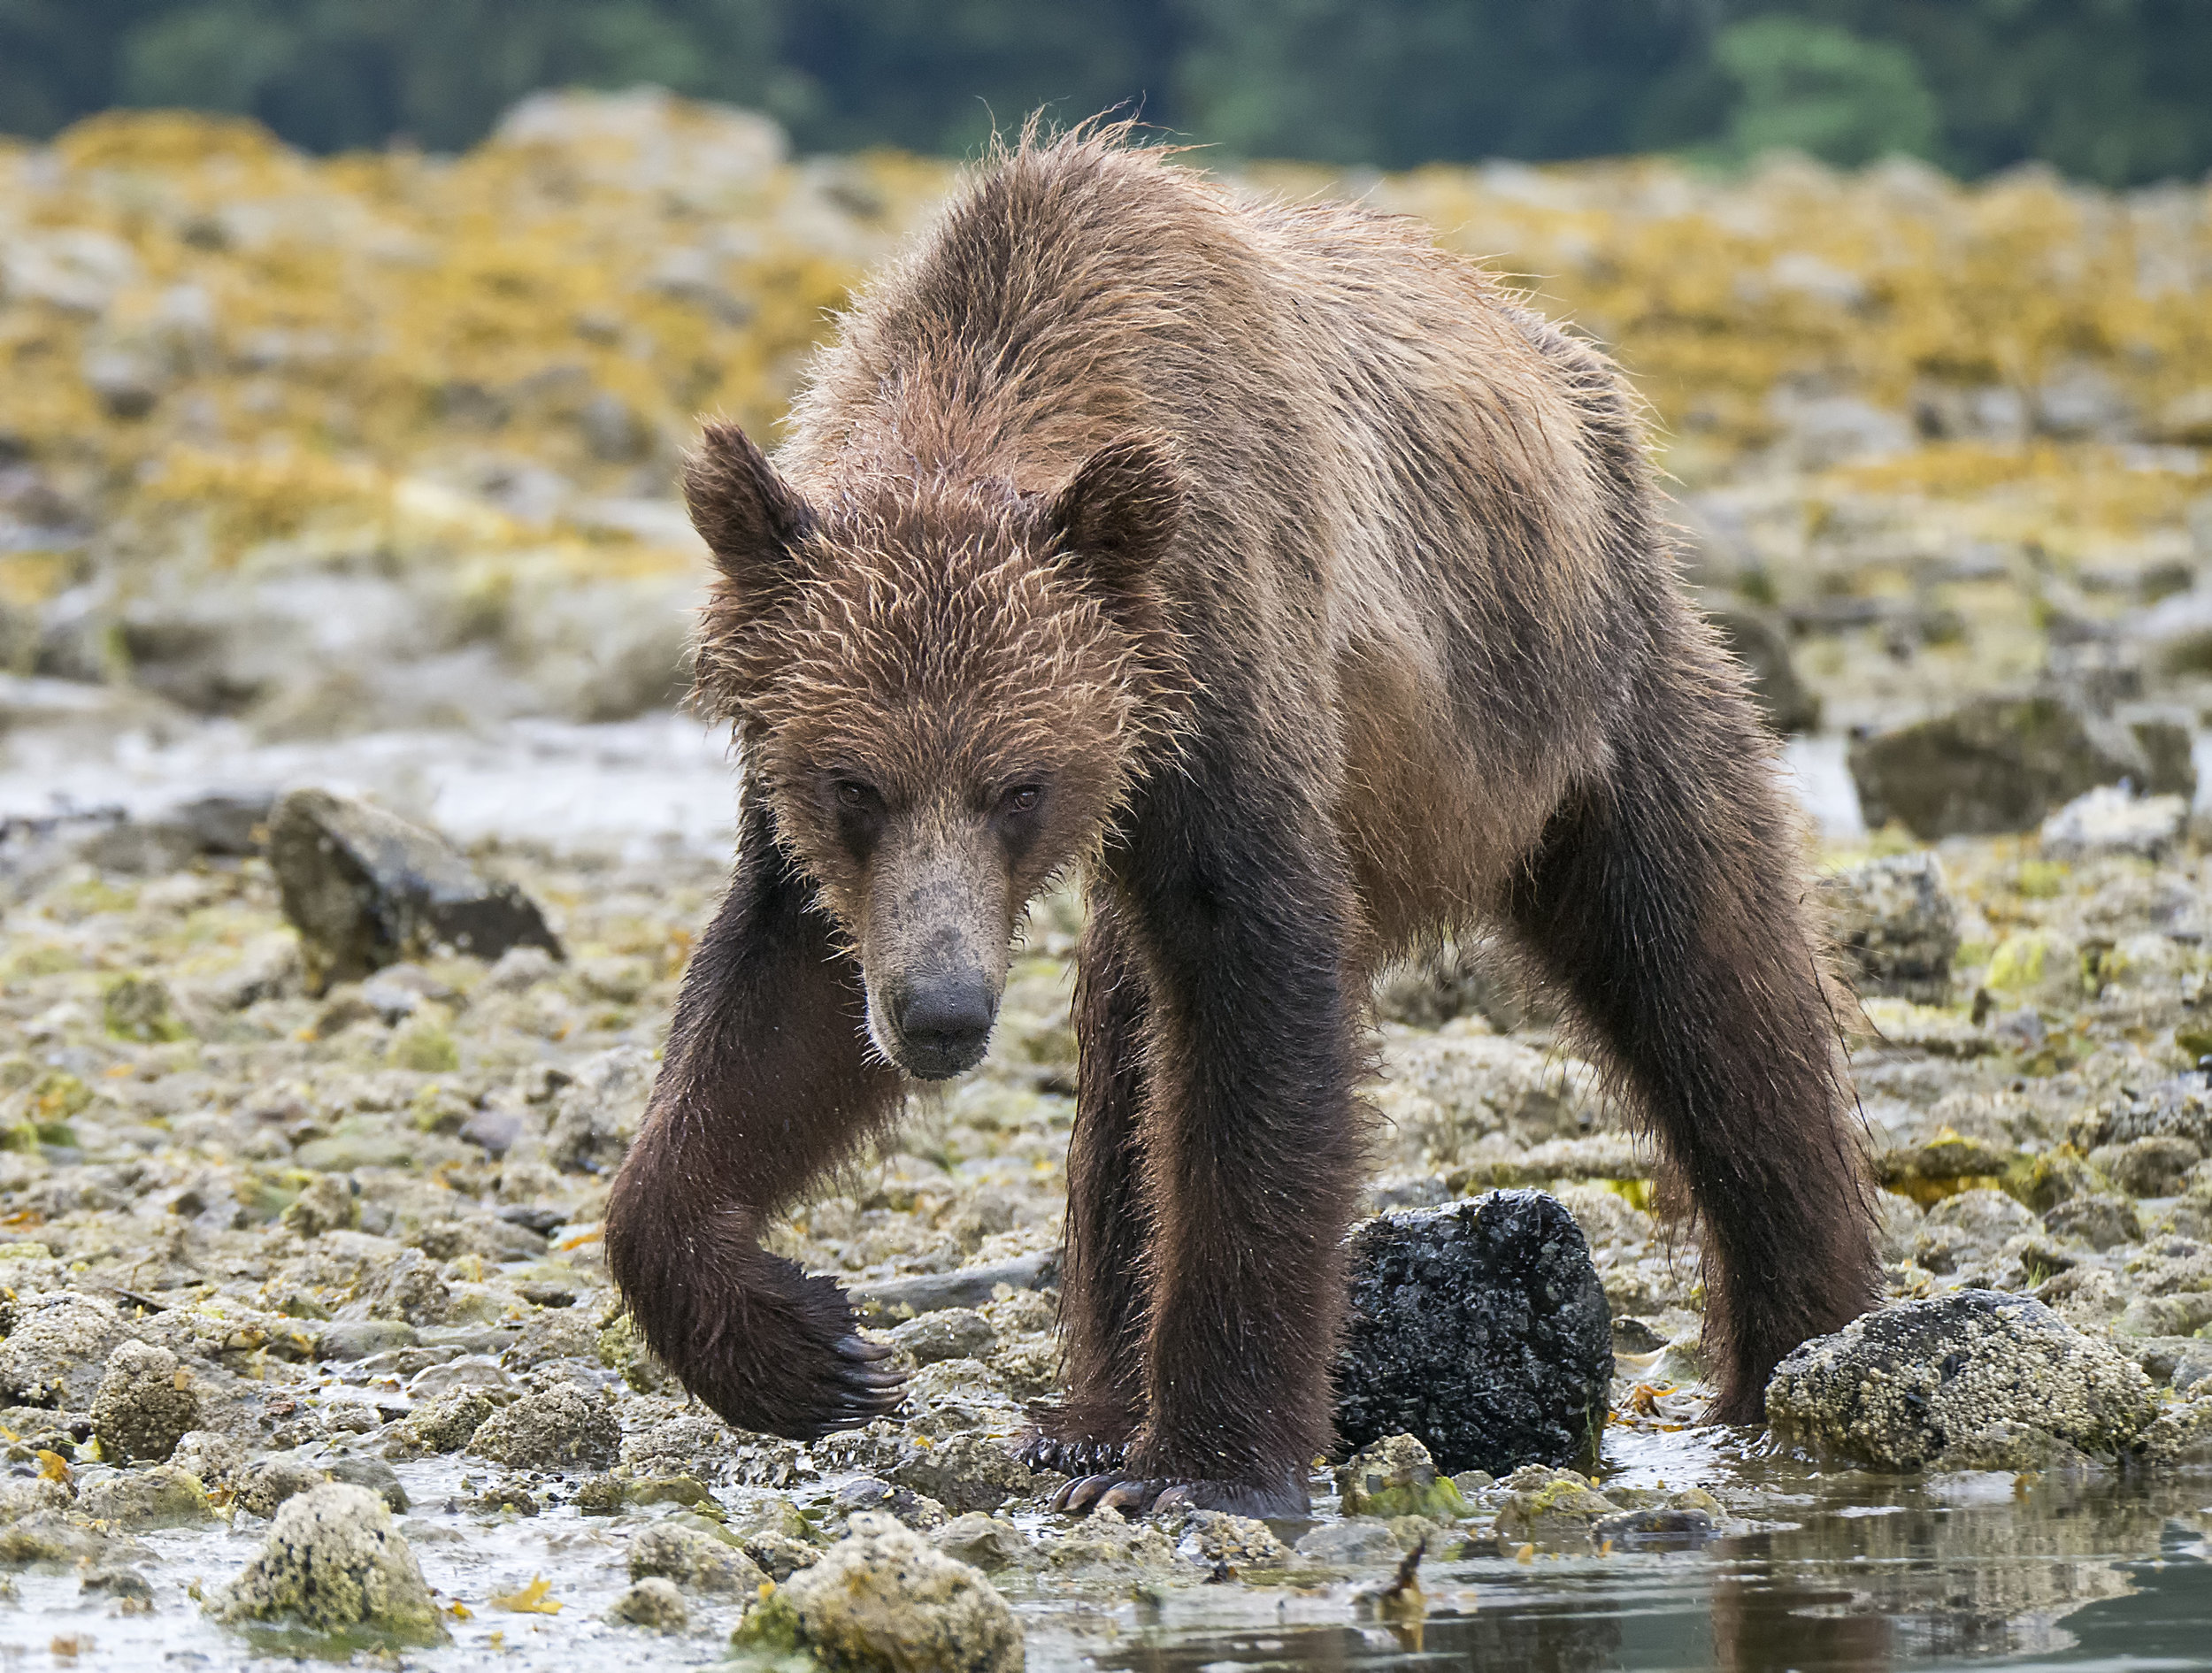 Lumix grizzly flipping rocks G85.jpg